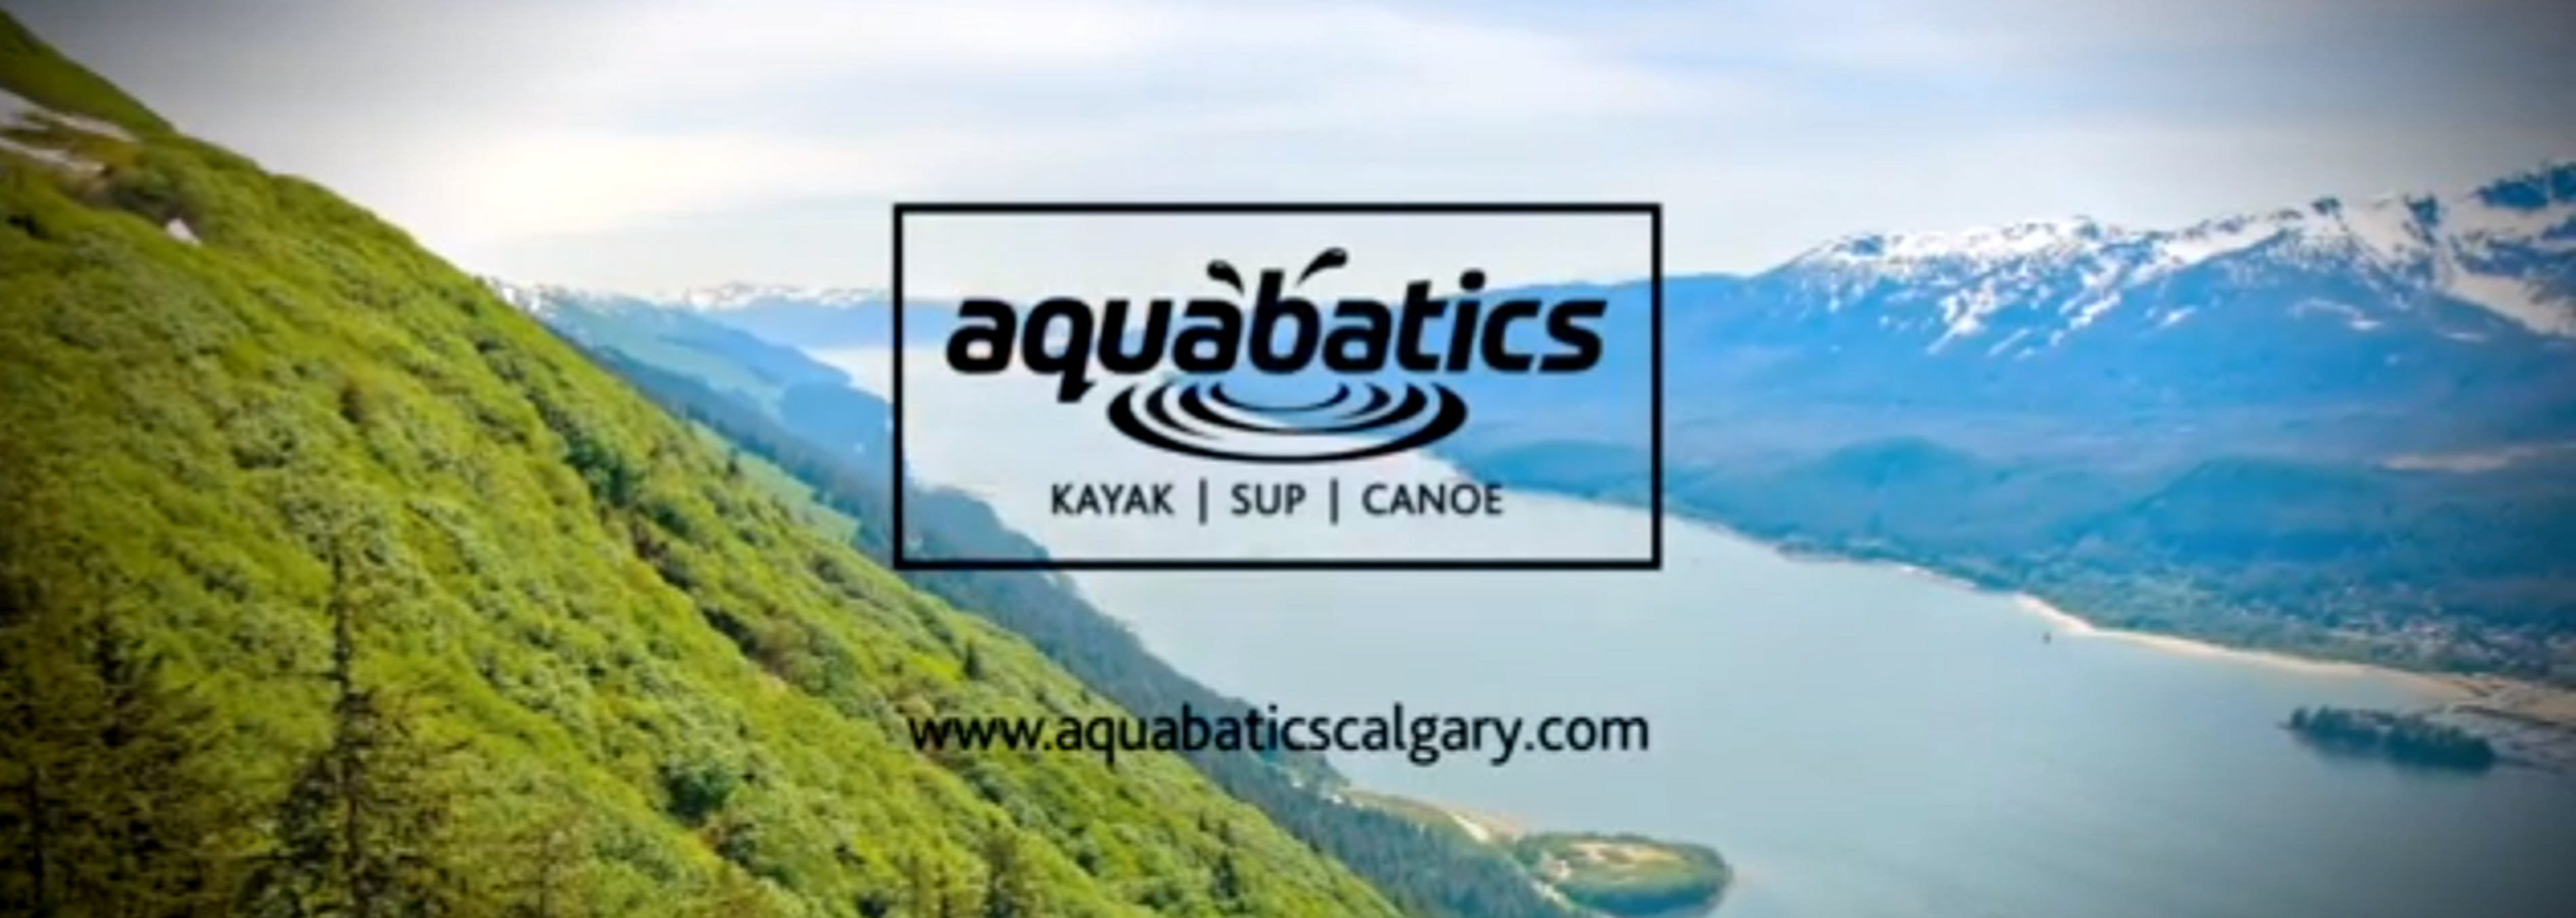 Aquabatics Tour Promo - Instructional Whitewater Kayaking Courses